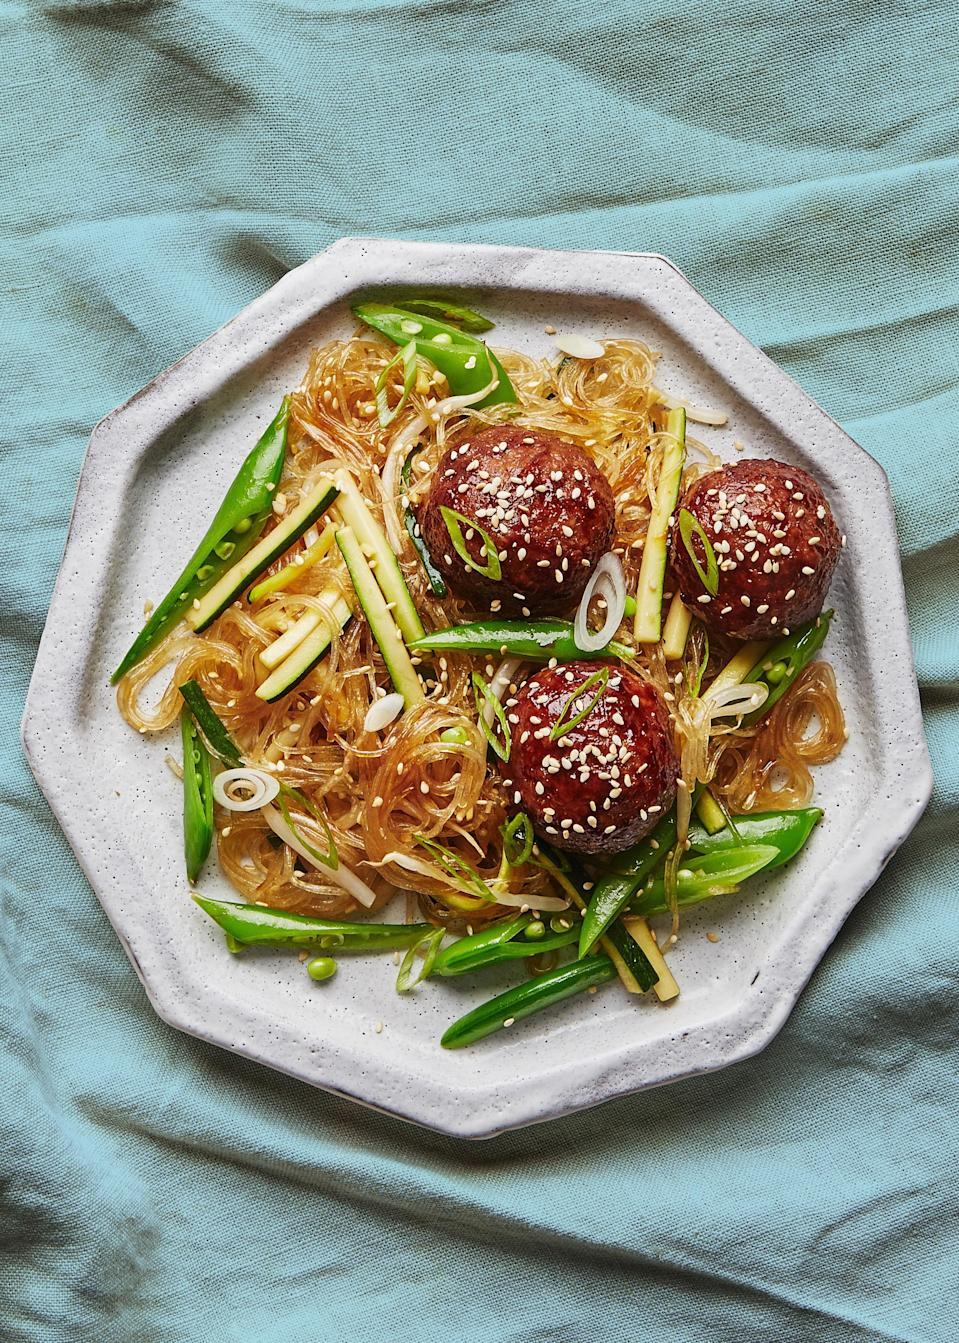 "<a href=""https://www.bonappetit.com/recipe/hoisin-turkey-meatballs-with-glass-noodles?mbid=synd_yahoo_rss"" rel=""nofollow noopener"" target=""_blank"" data-ylk=""slk:See recipe."" class=""link rapid-noclick-resp"">See recipe.</a>"